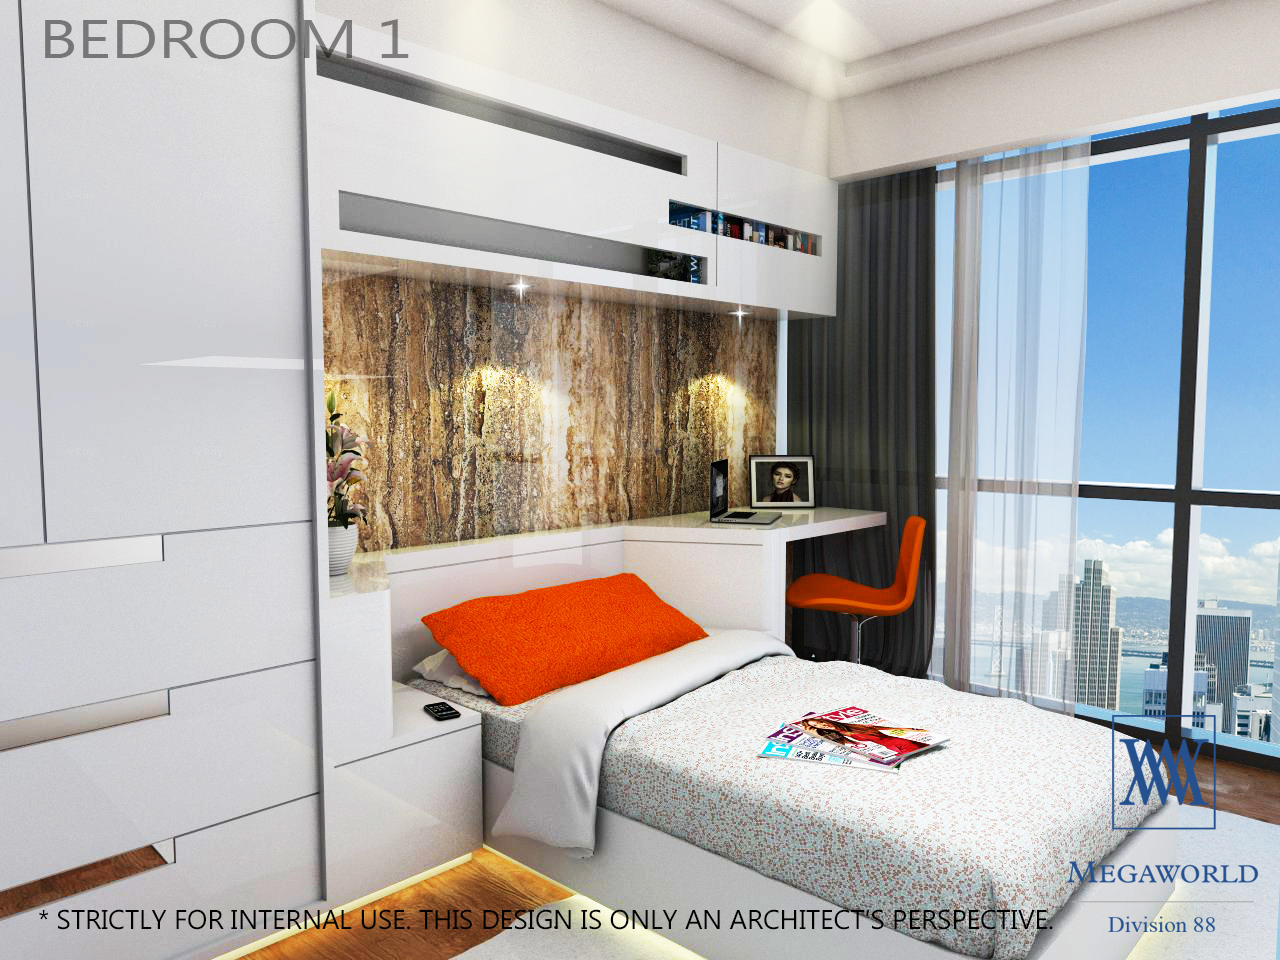 UPTOWN-PARKSUITES-BEDROOM 1-condos-for-sale-bgc-fort-bonifacio-global-city-taguig